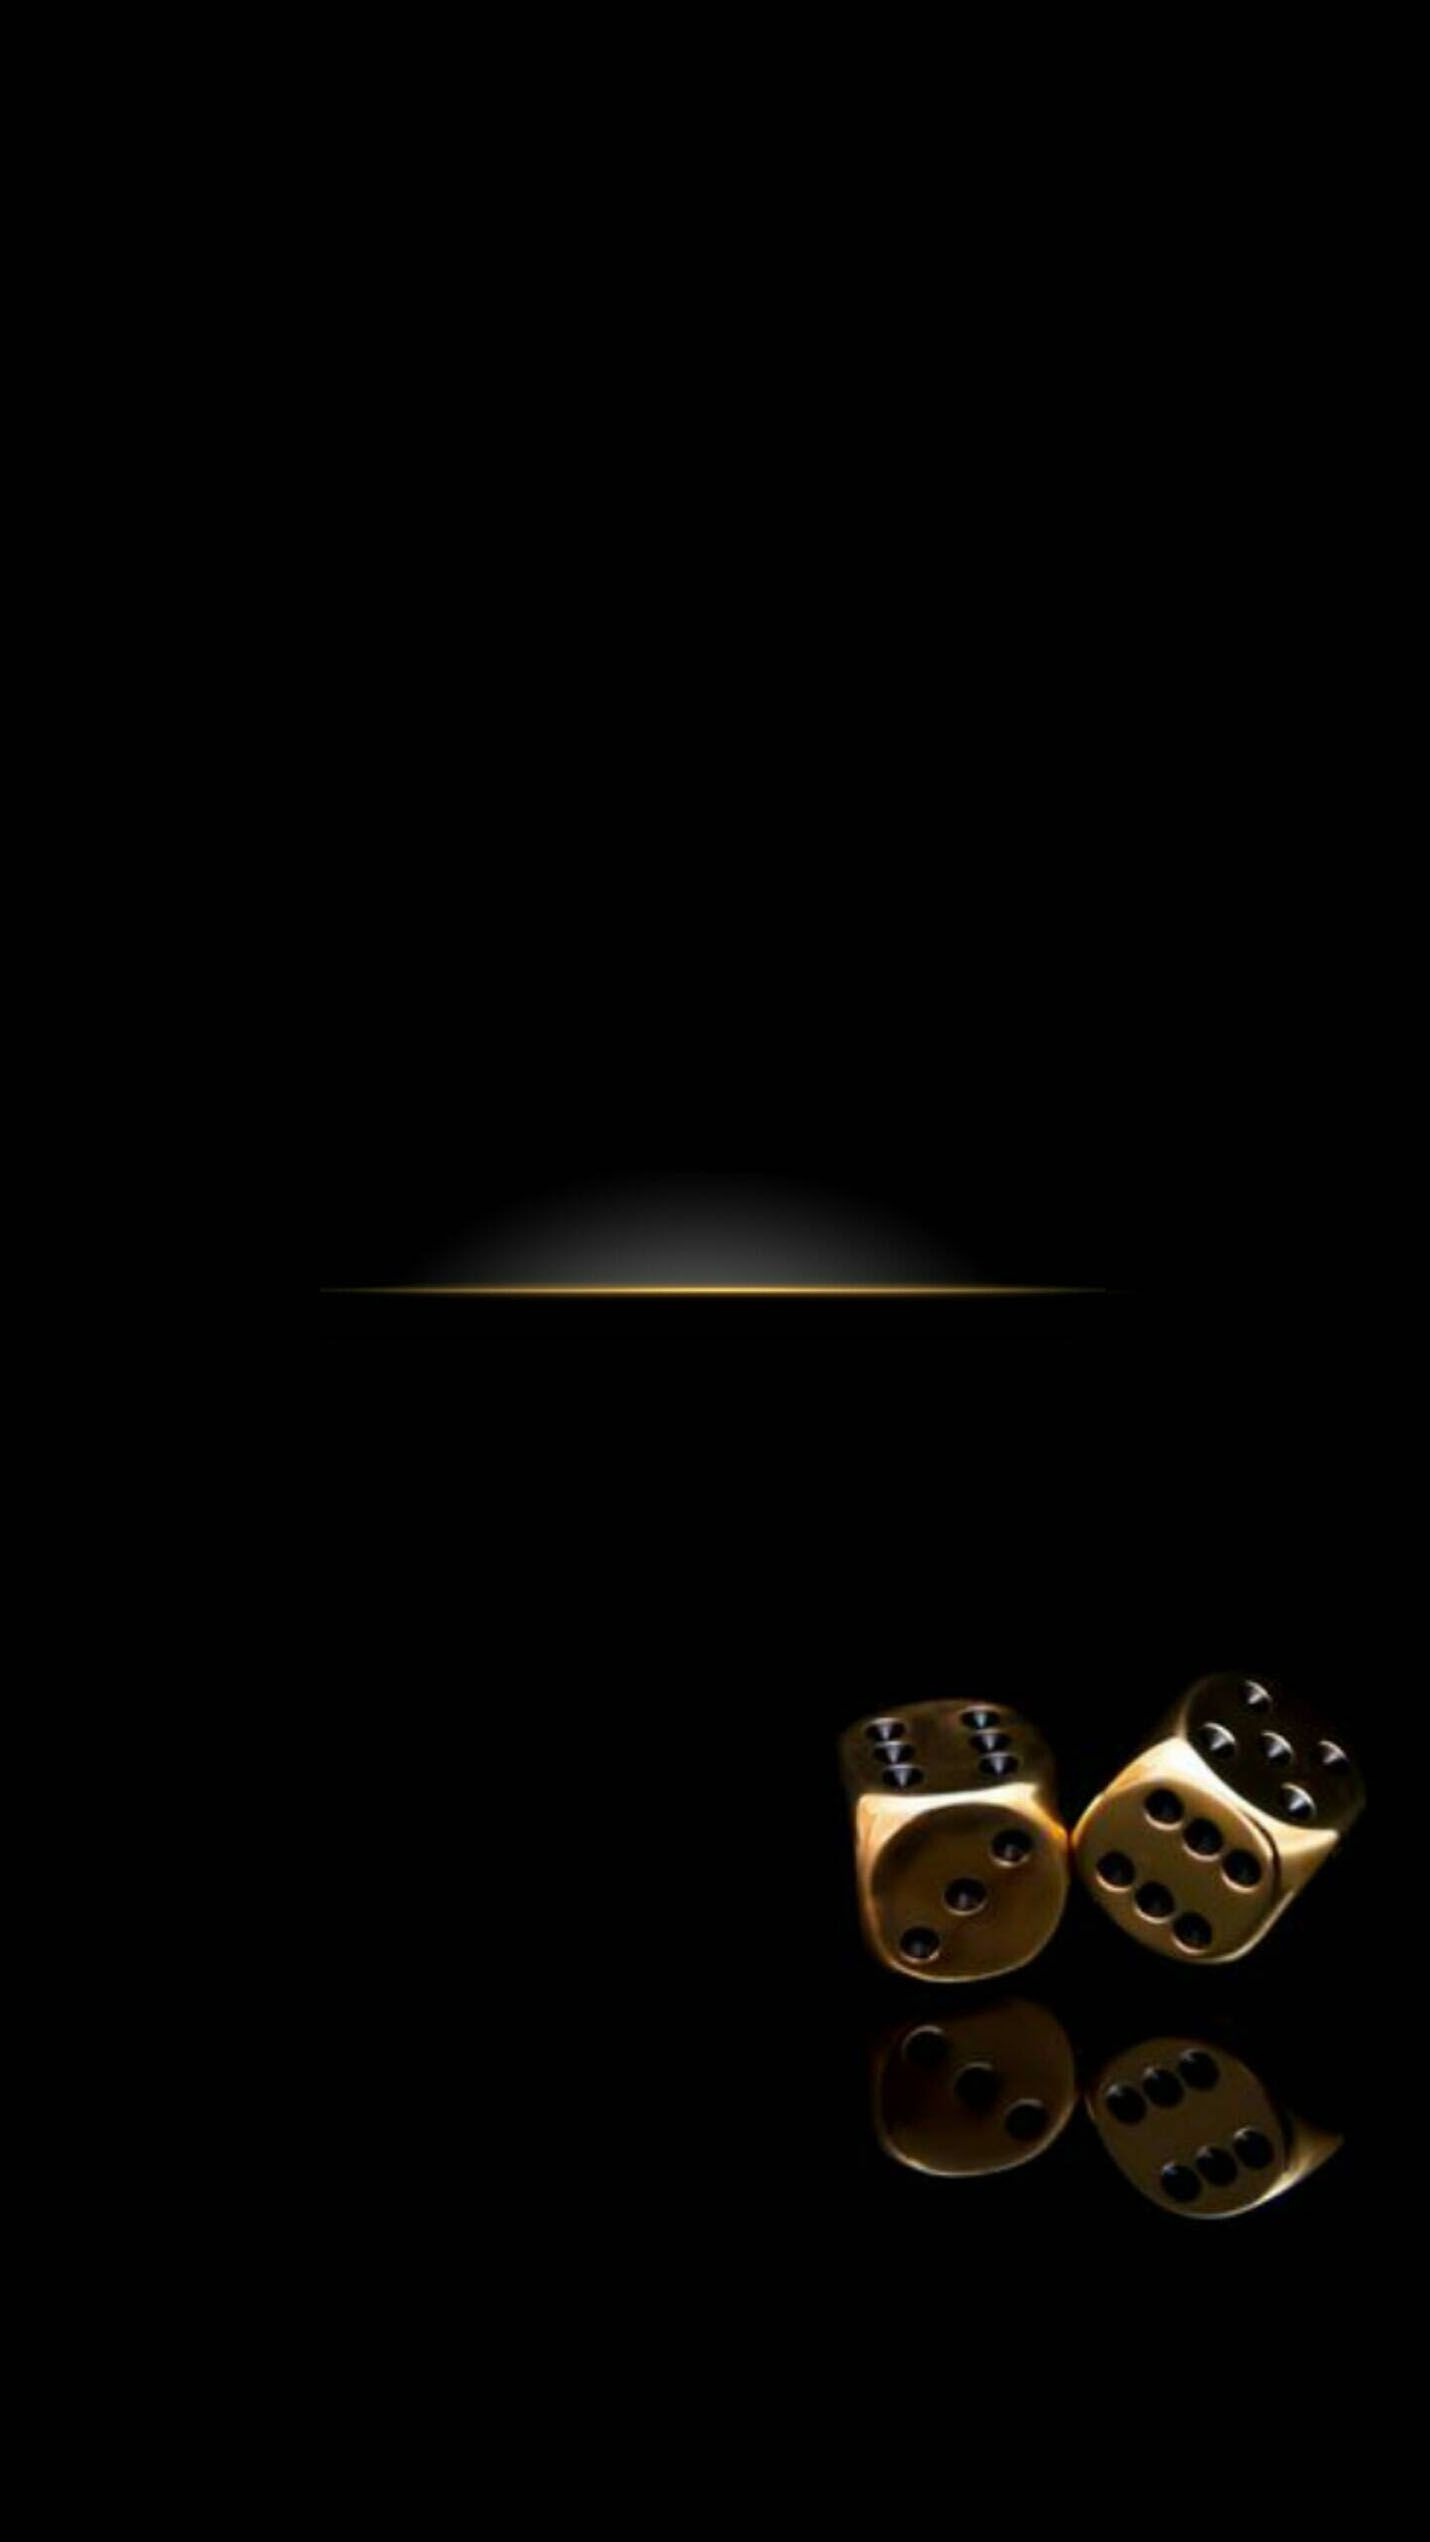 Drake Gold Black Iphone Wallpapers Top Free Drake Gold Black